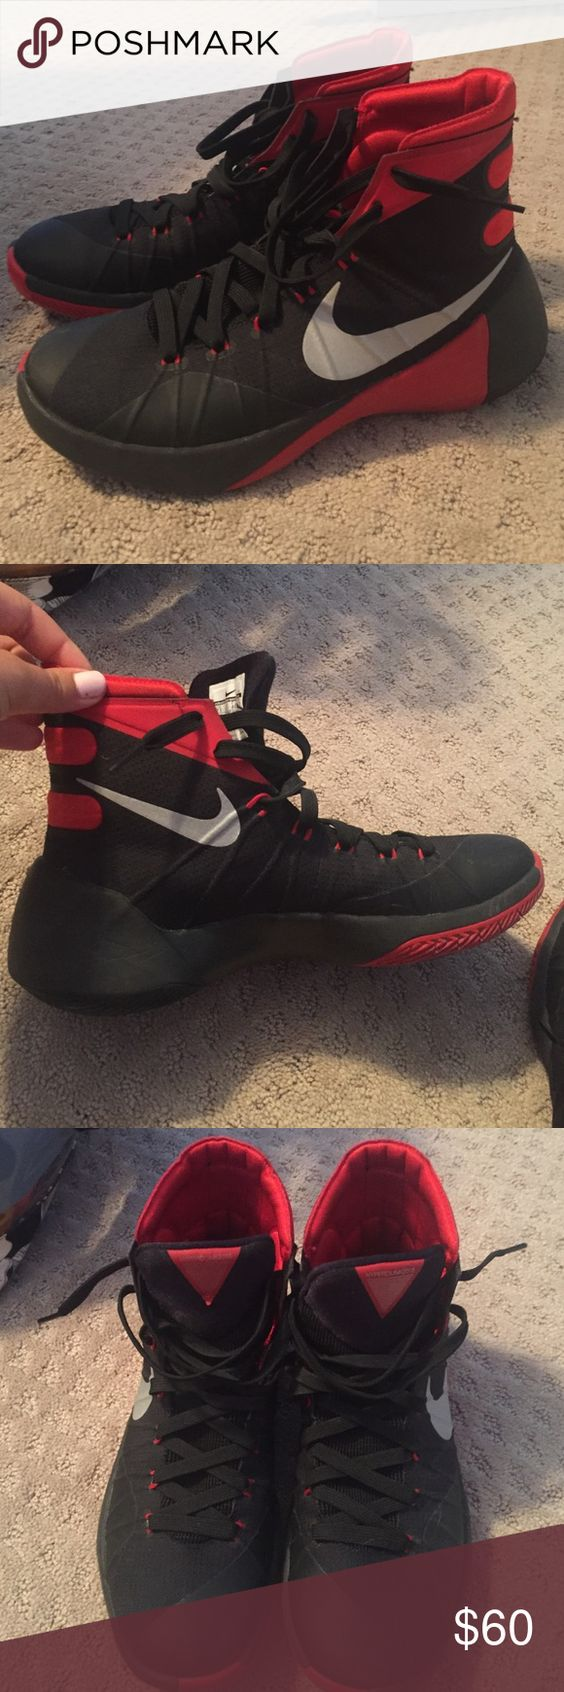 Men's 2015 Nike Hyperdunk (Womens size 9) Worn for less than half a season. Nike Shoes Athletic Shoes